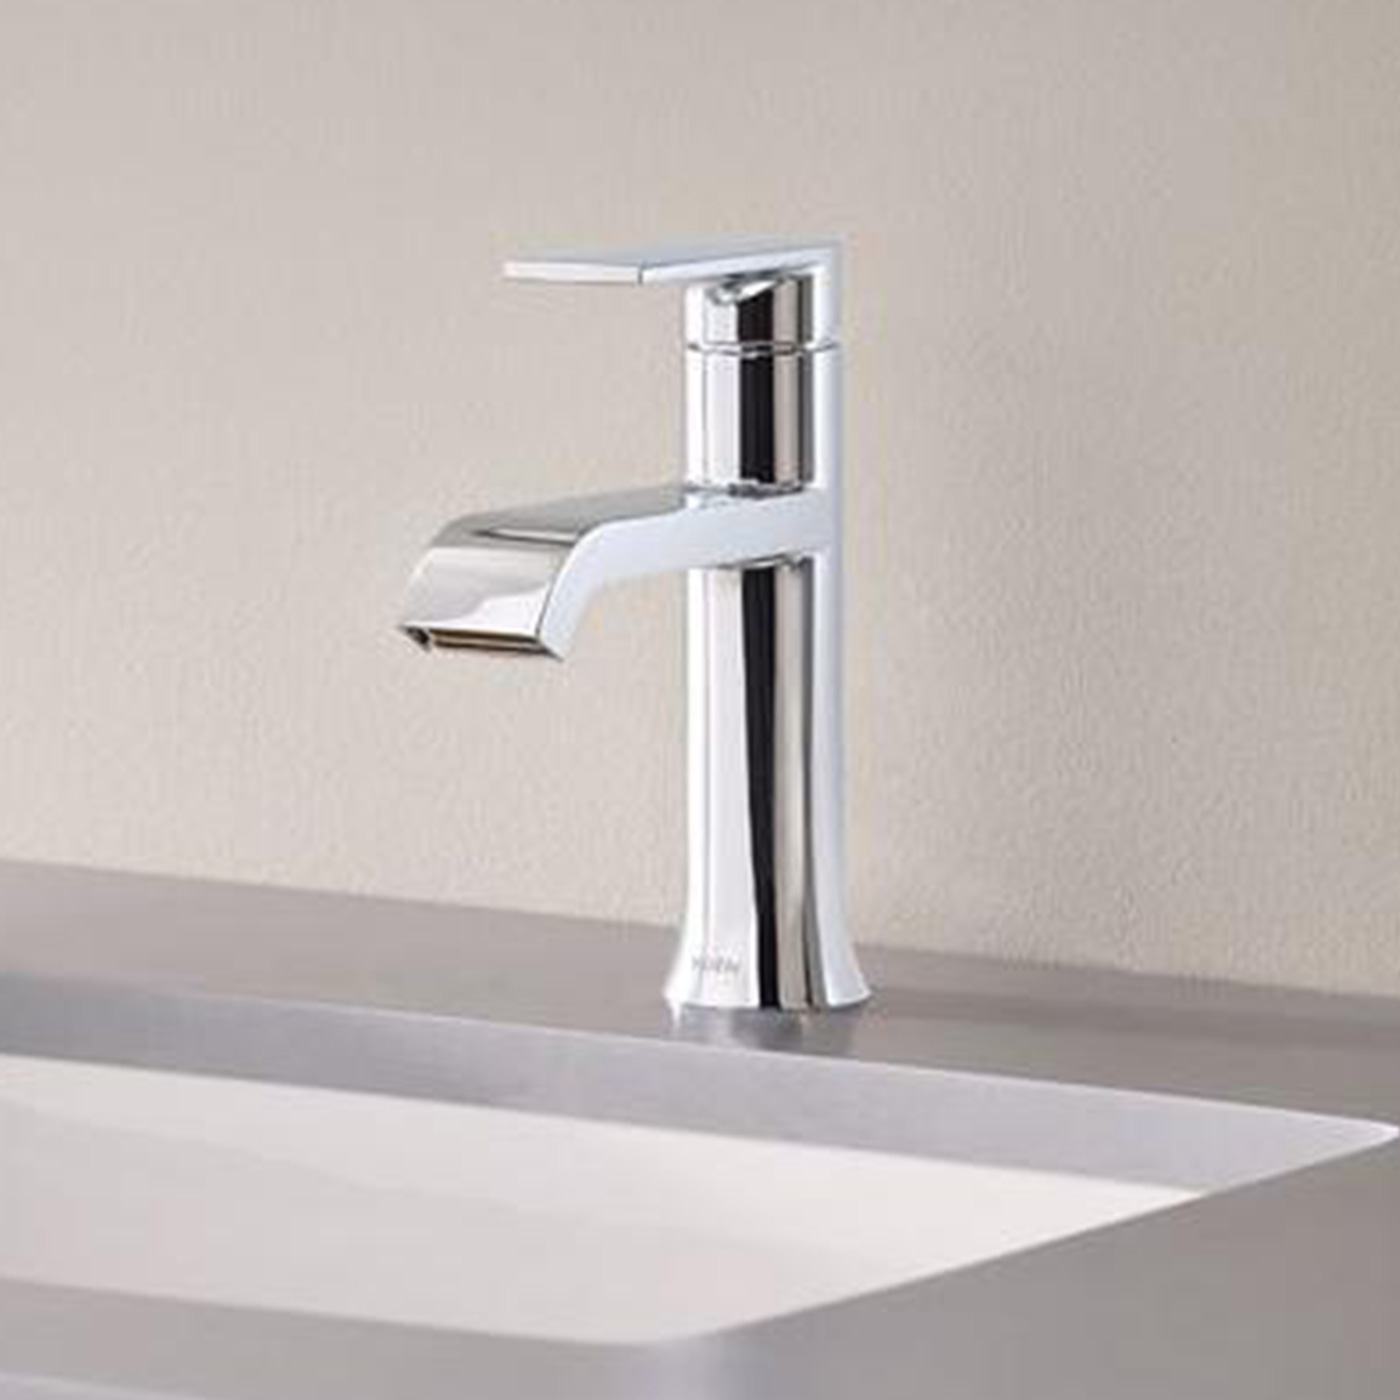 Single Handle Sink Faucets Bathroom for Your  Shower Head and Bathtub The Home Depot